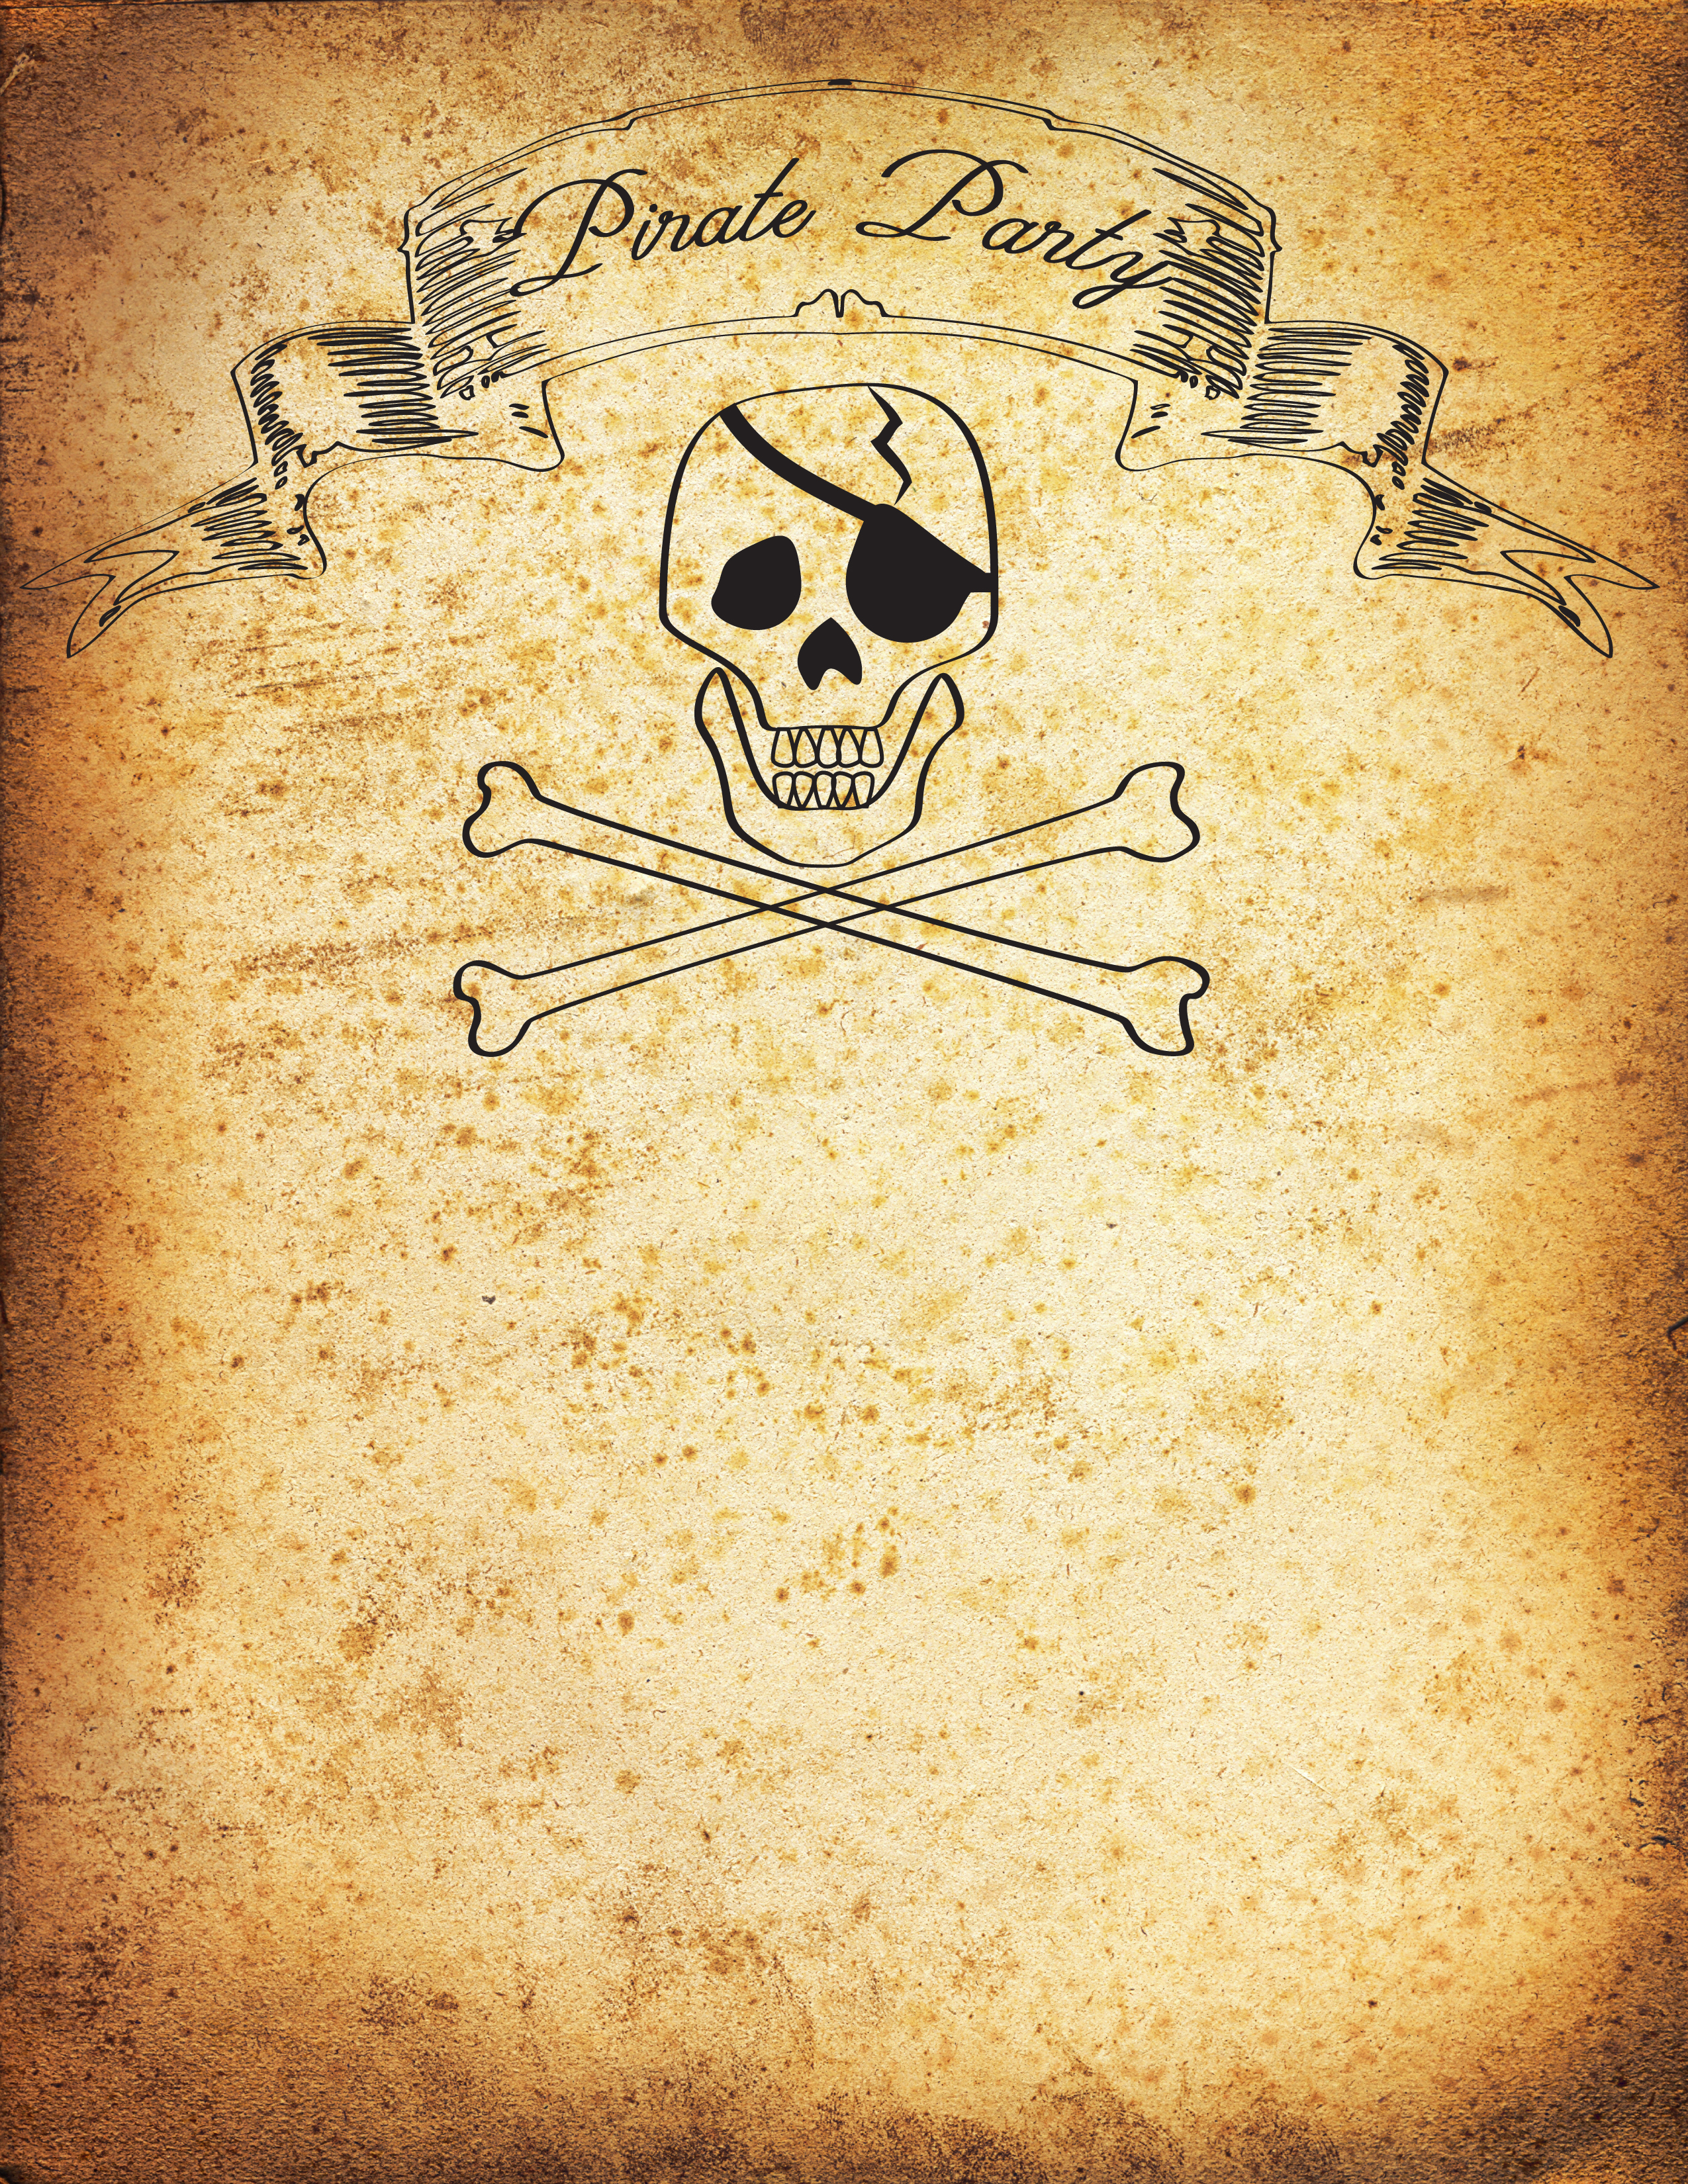 pirate birthday party invitation template free ; Pirate-party-invitations-combined-with-your-creativity-will-make-this-looks-awesome-1